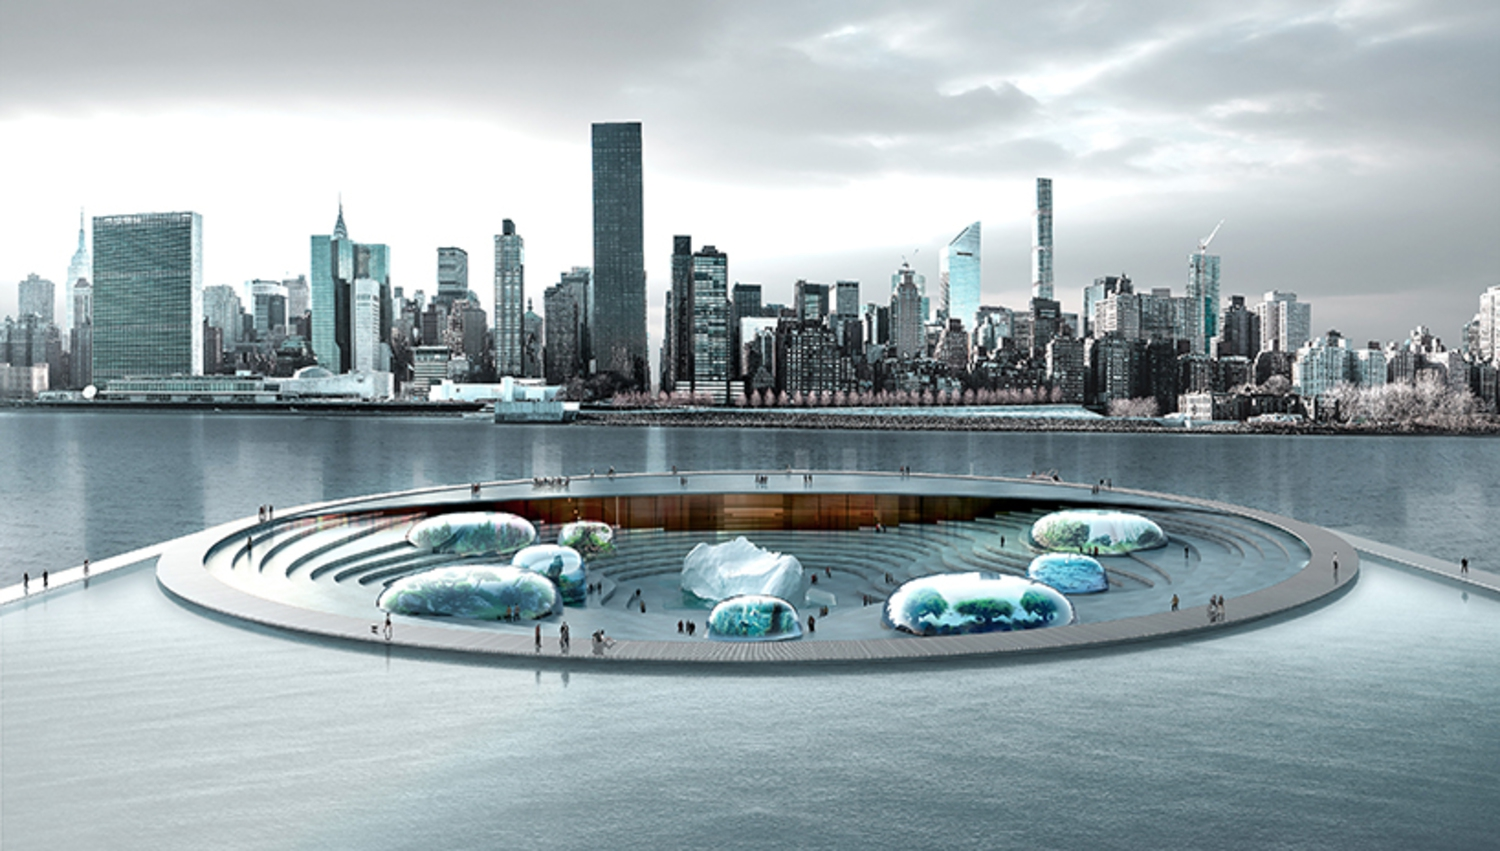 The proposal creates a dynamic system that interacts with its surroundings